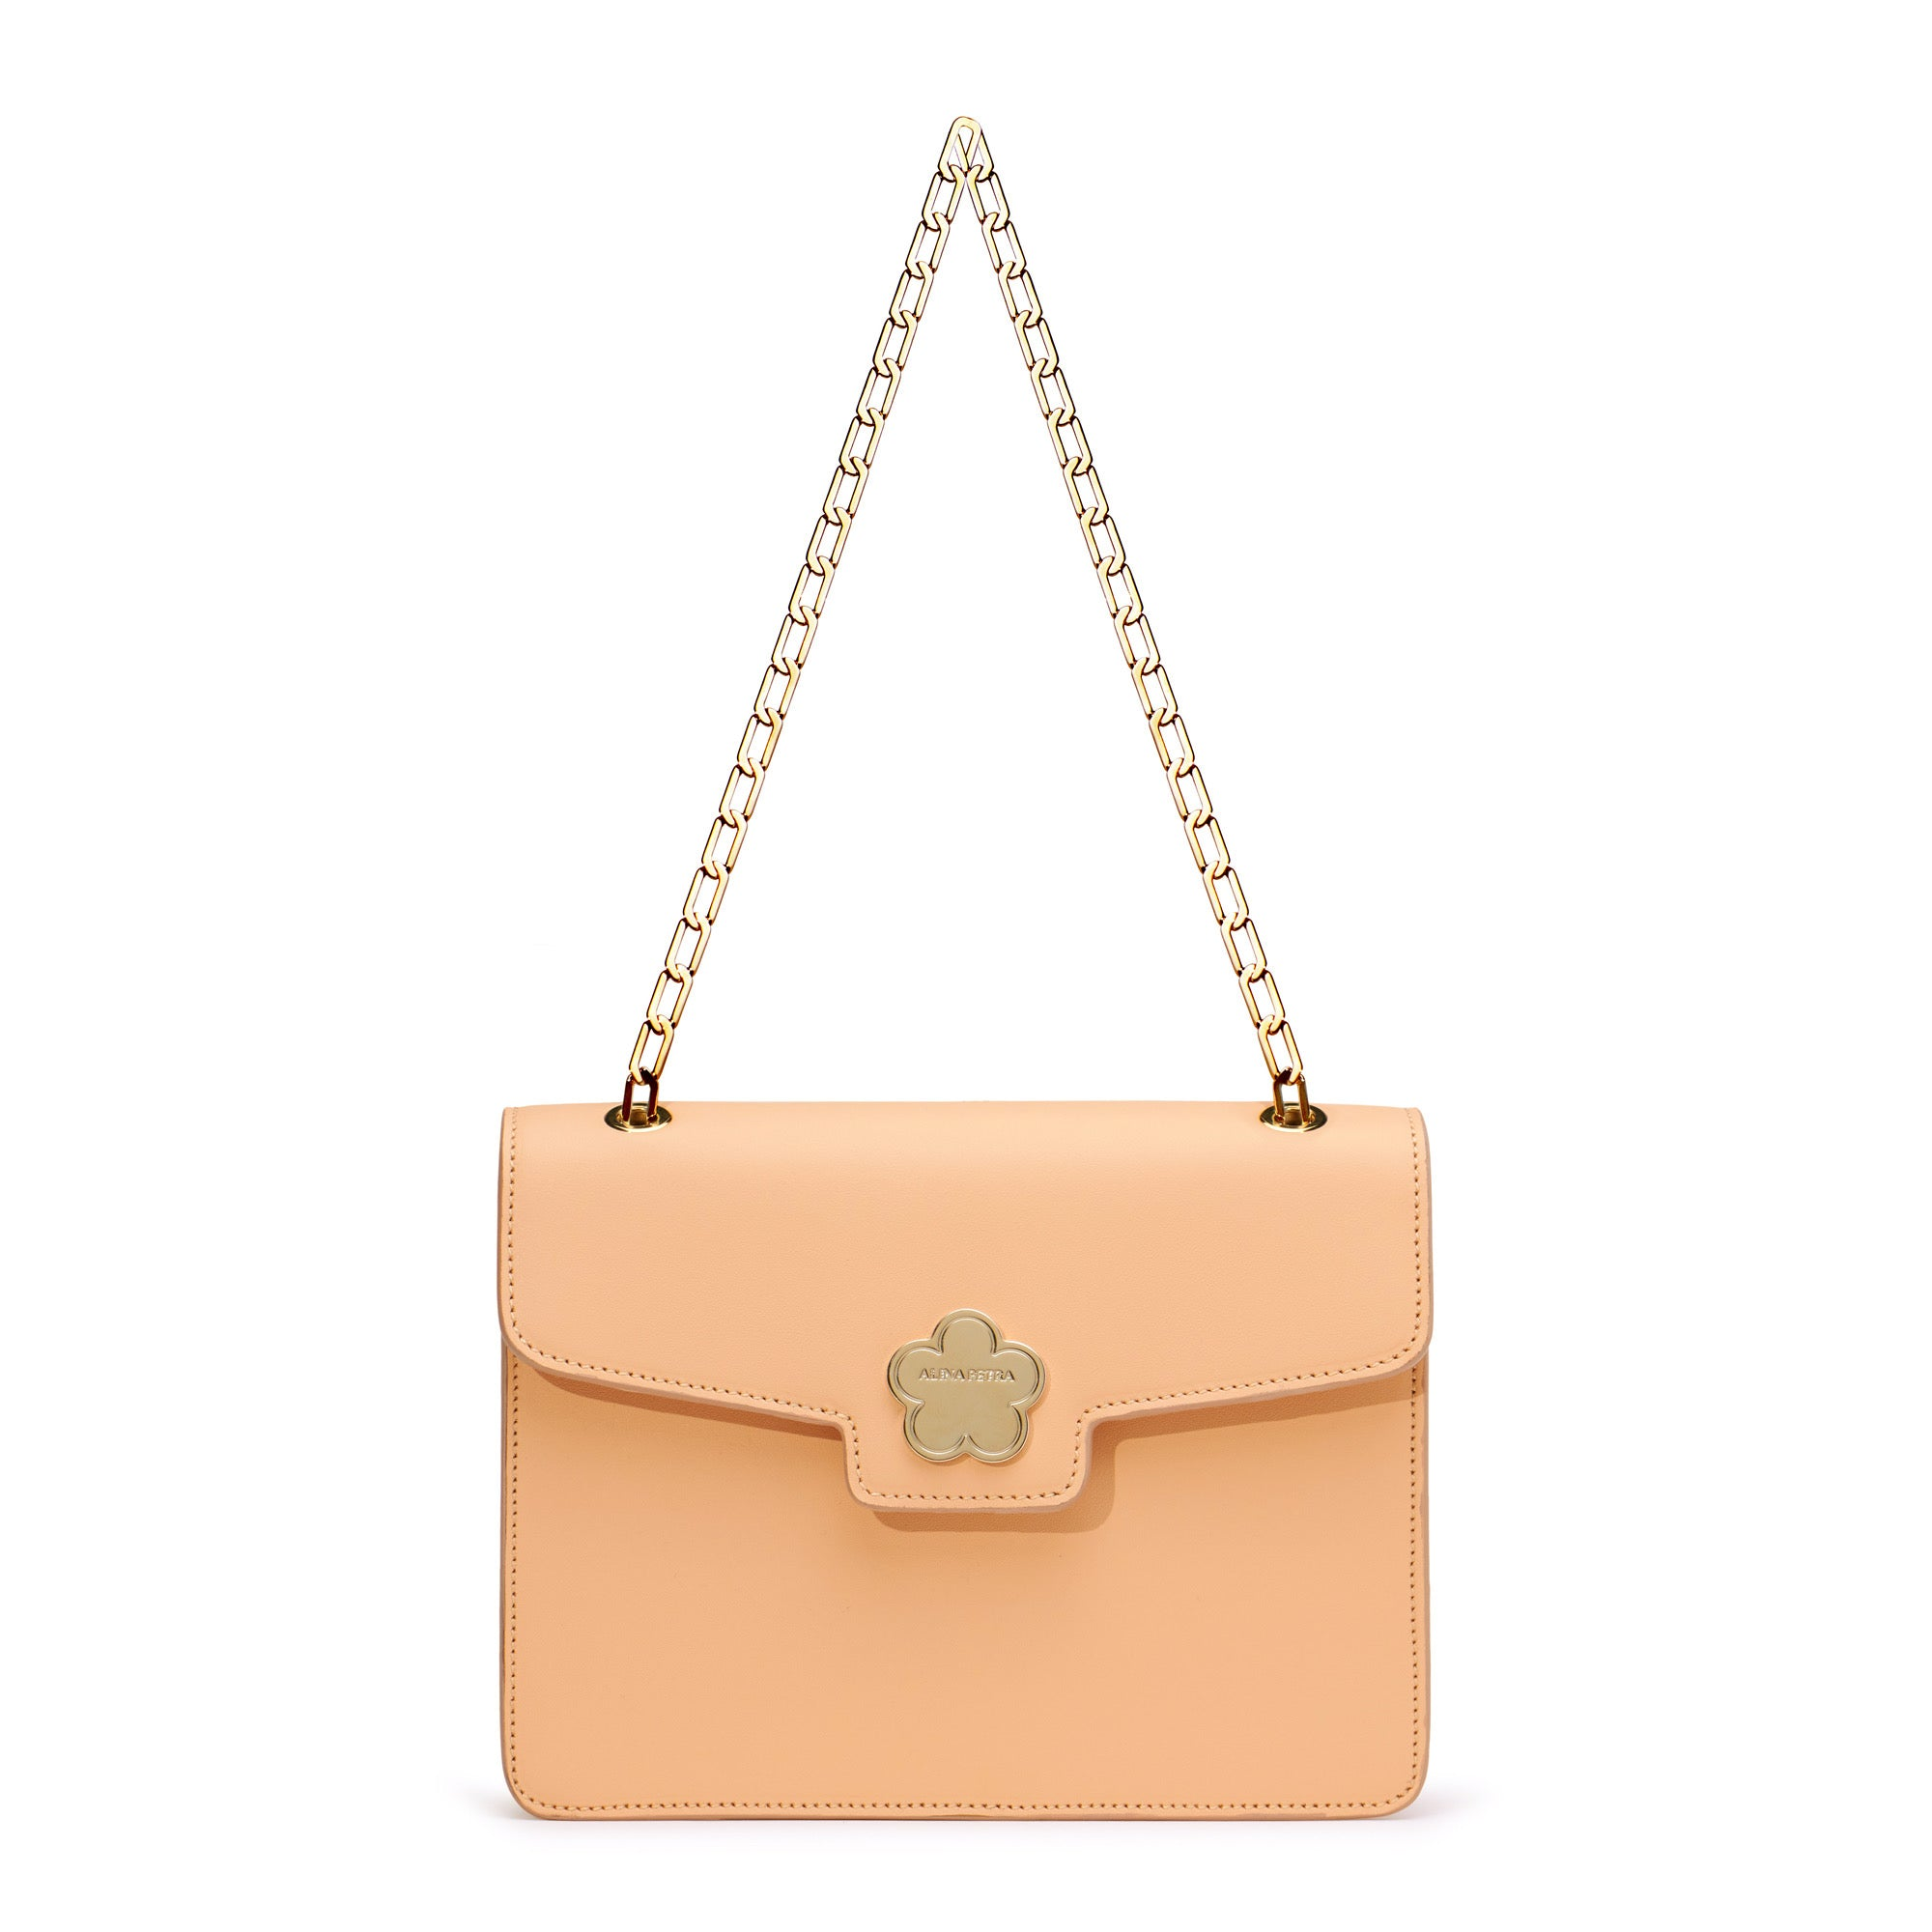 MINI BLOSSOM HANDBAG